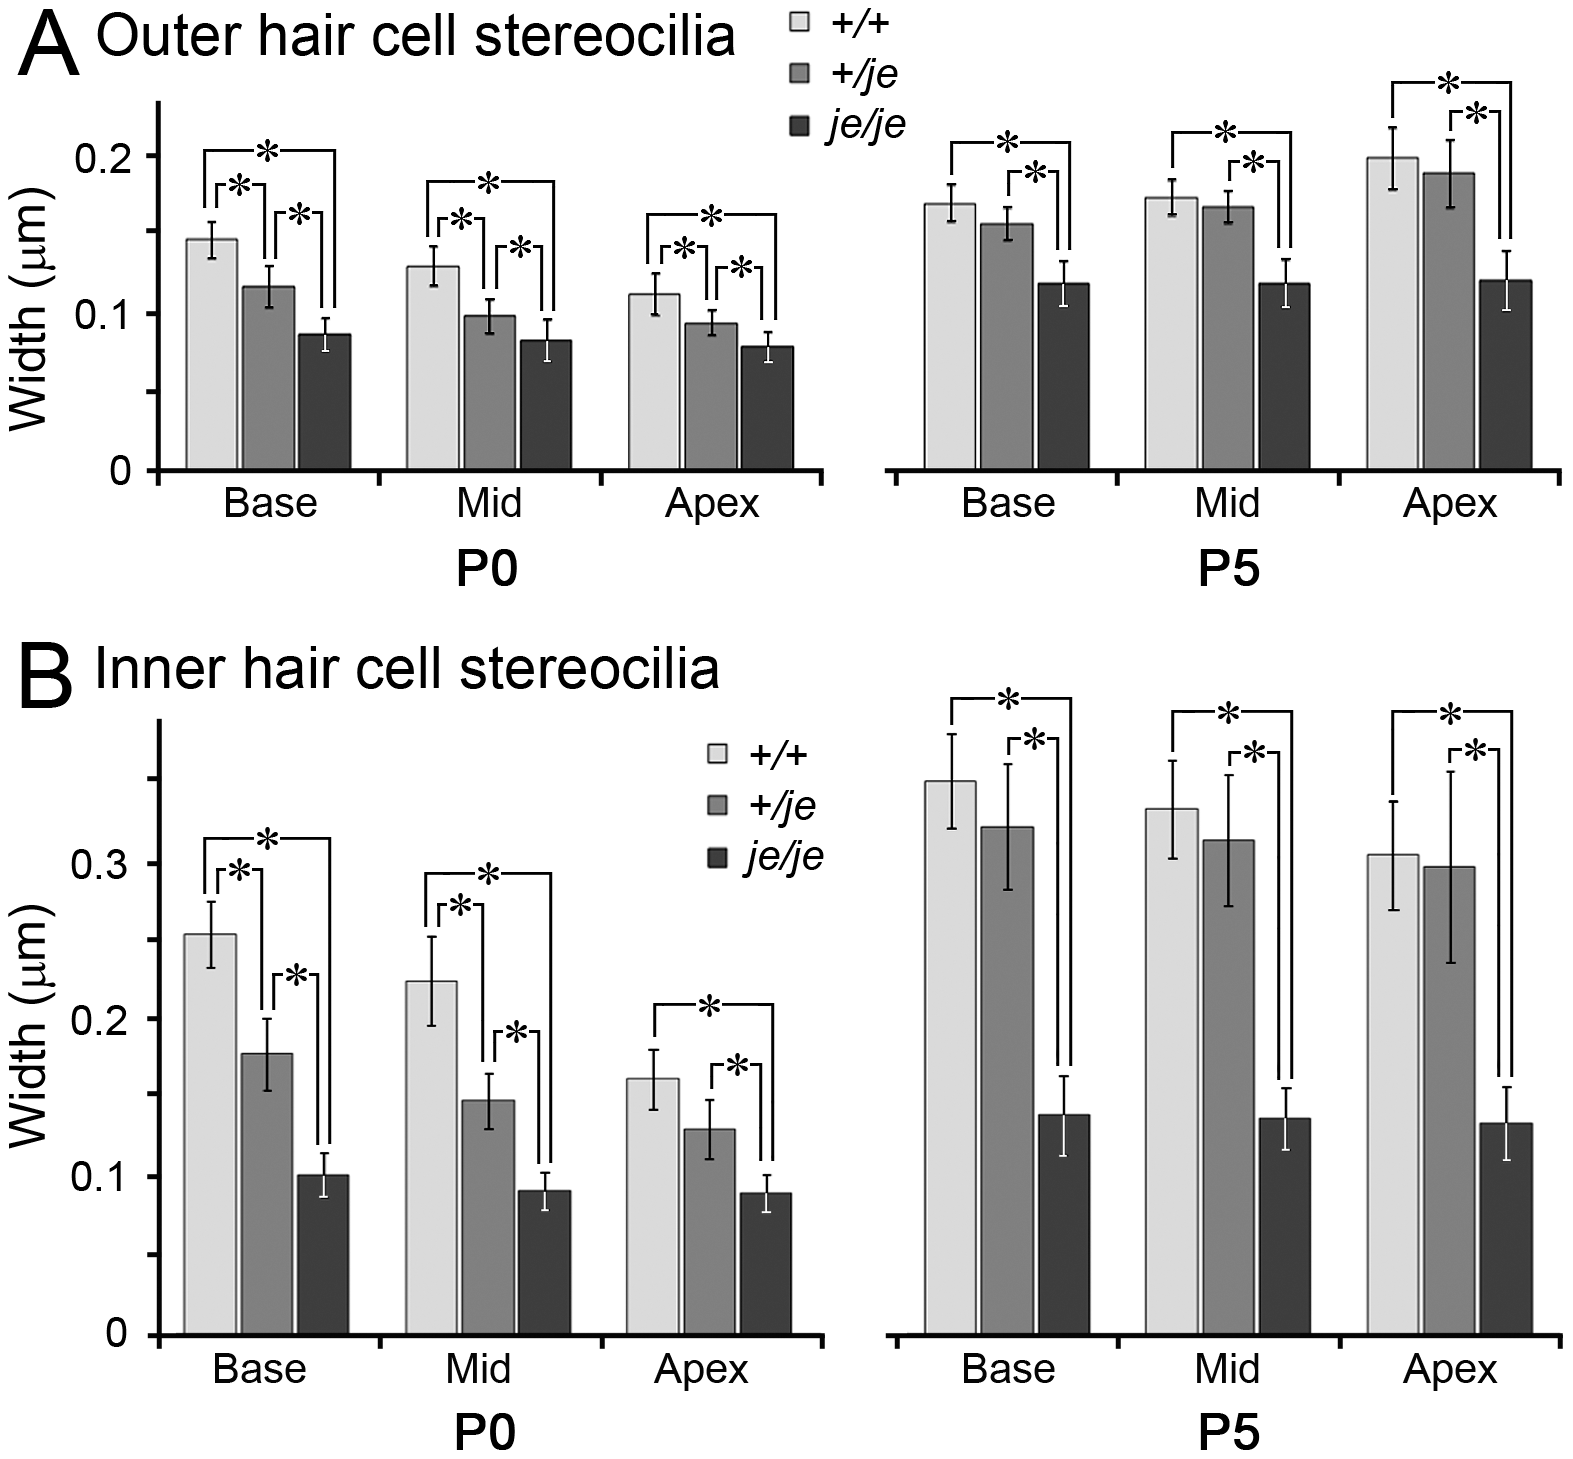 Stereociliary width measurements for cochlear hair cells in early postnatal <i>+/+</i>, <i>+/je</i>, and <i>je/je</i> mice.